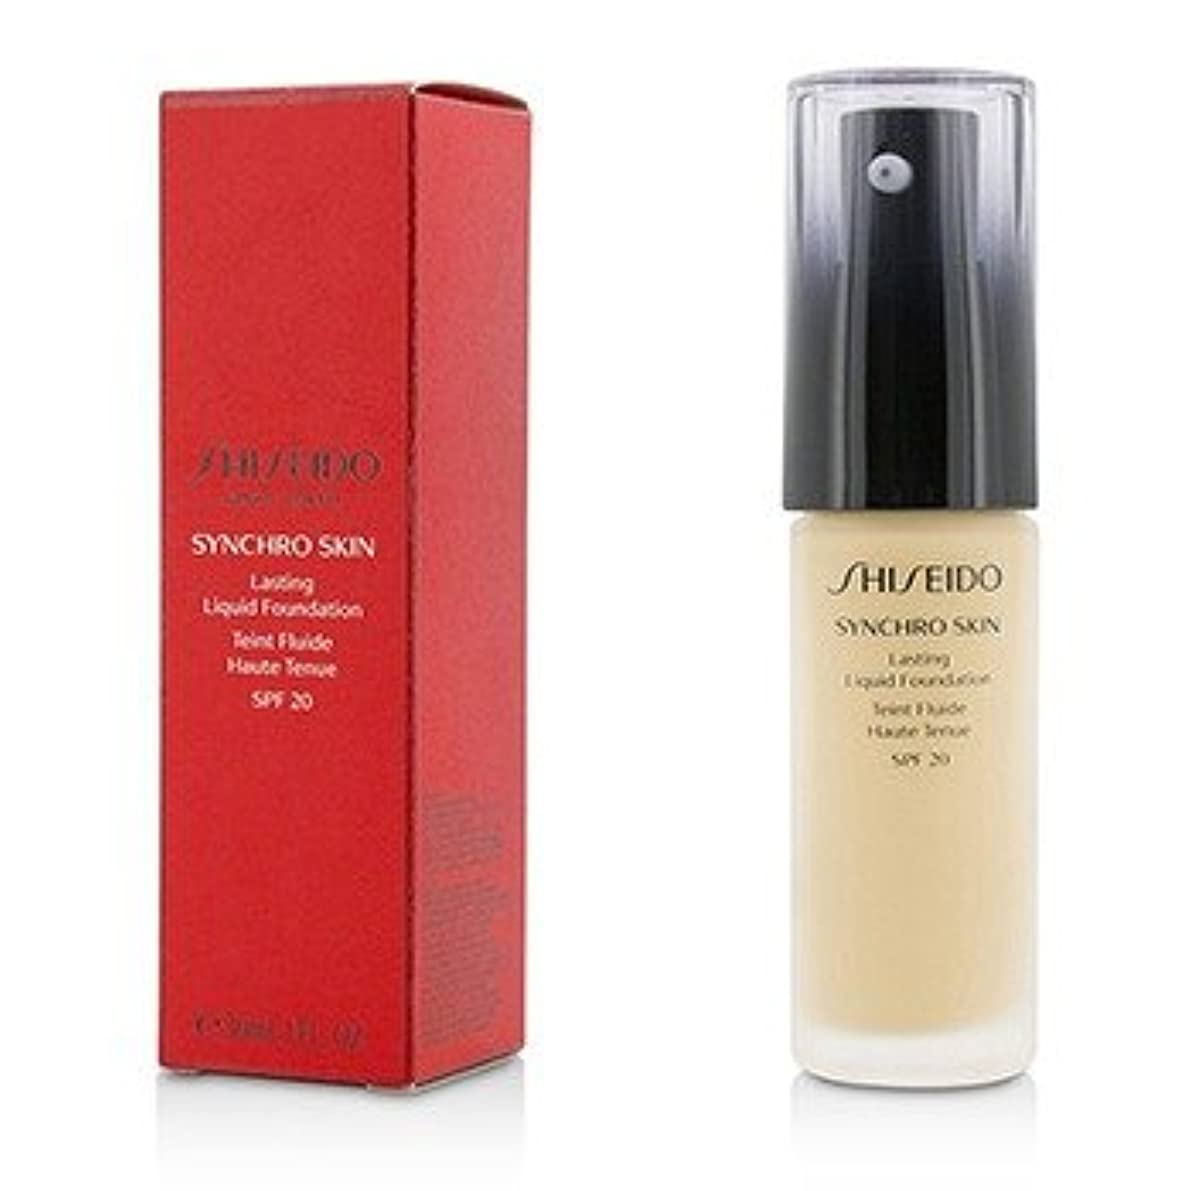 [Shiseido] Synchro Skin Lasting Liquid Foundation SPF 20 - Neutral 2 30ml/1oz